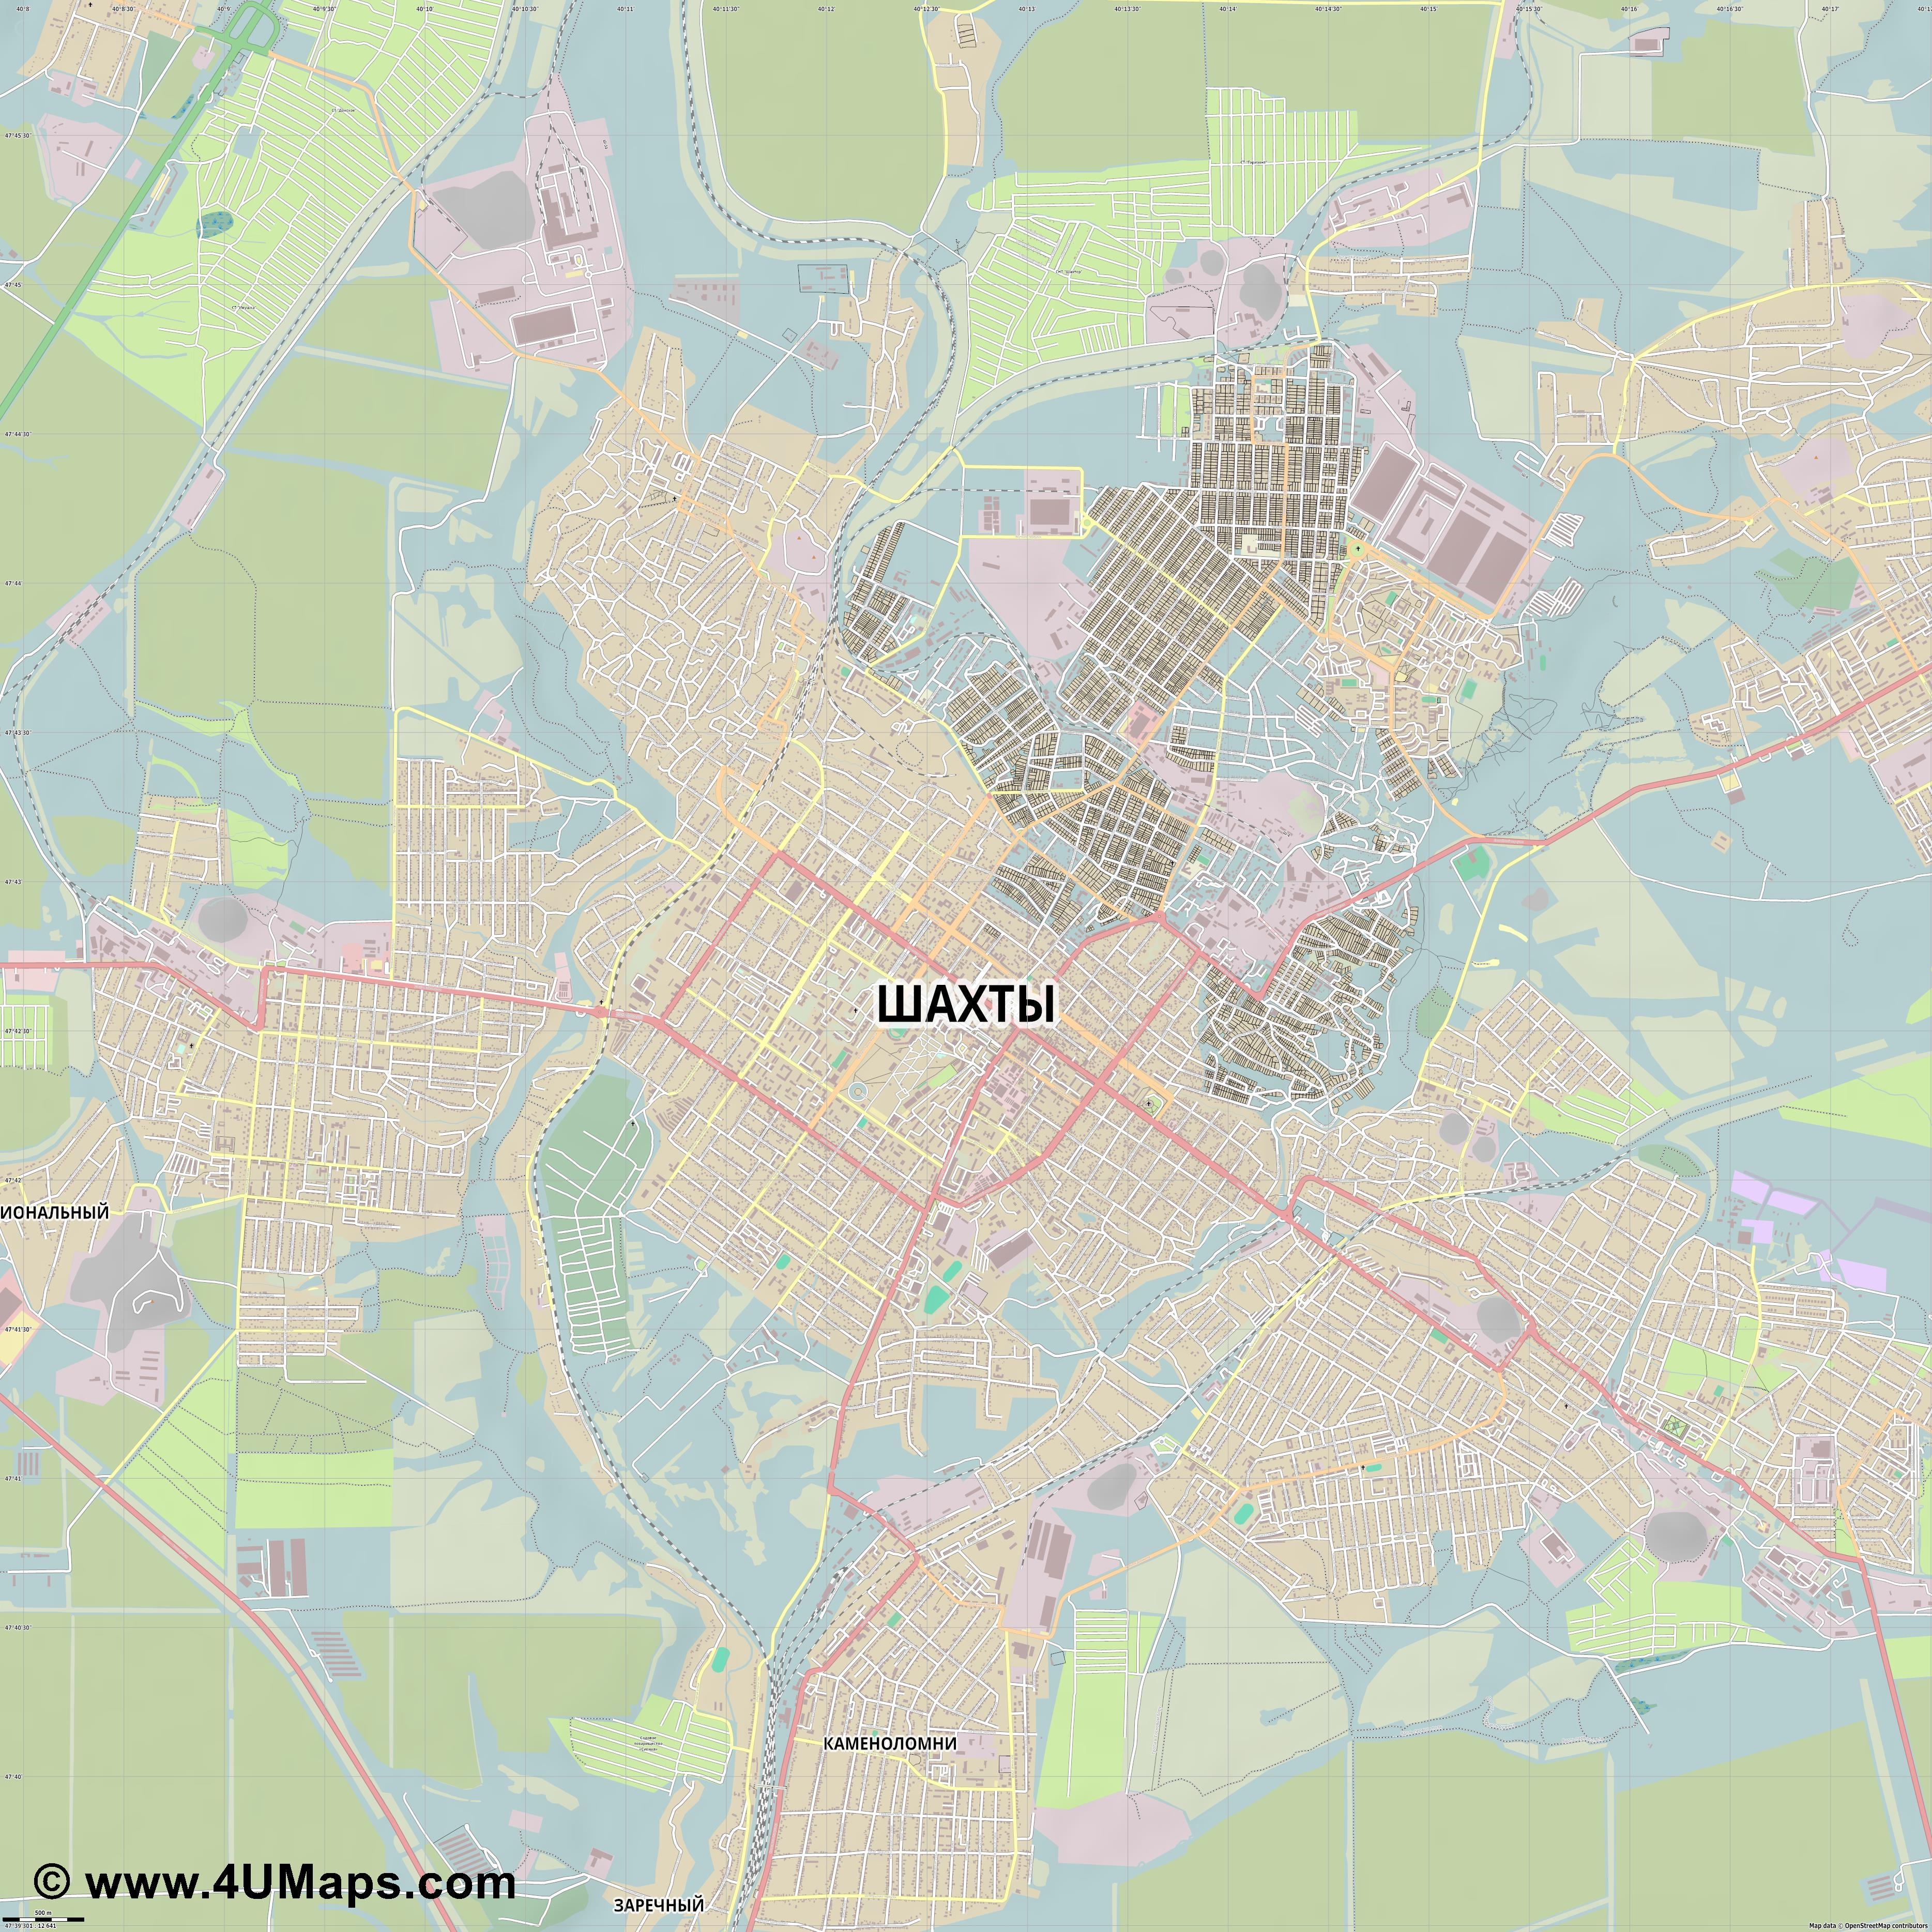 Шахты Shakhty Chakhty Šachty Schachty  jpg ultra high detail preview vector city map